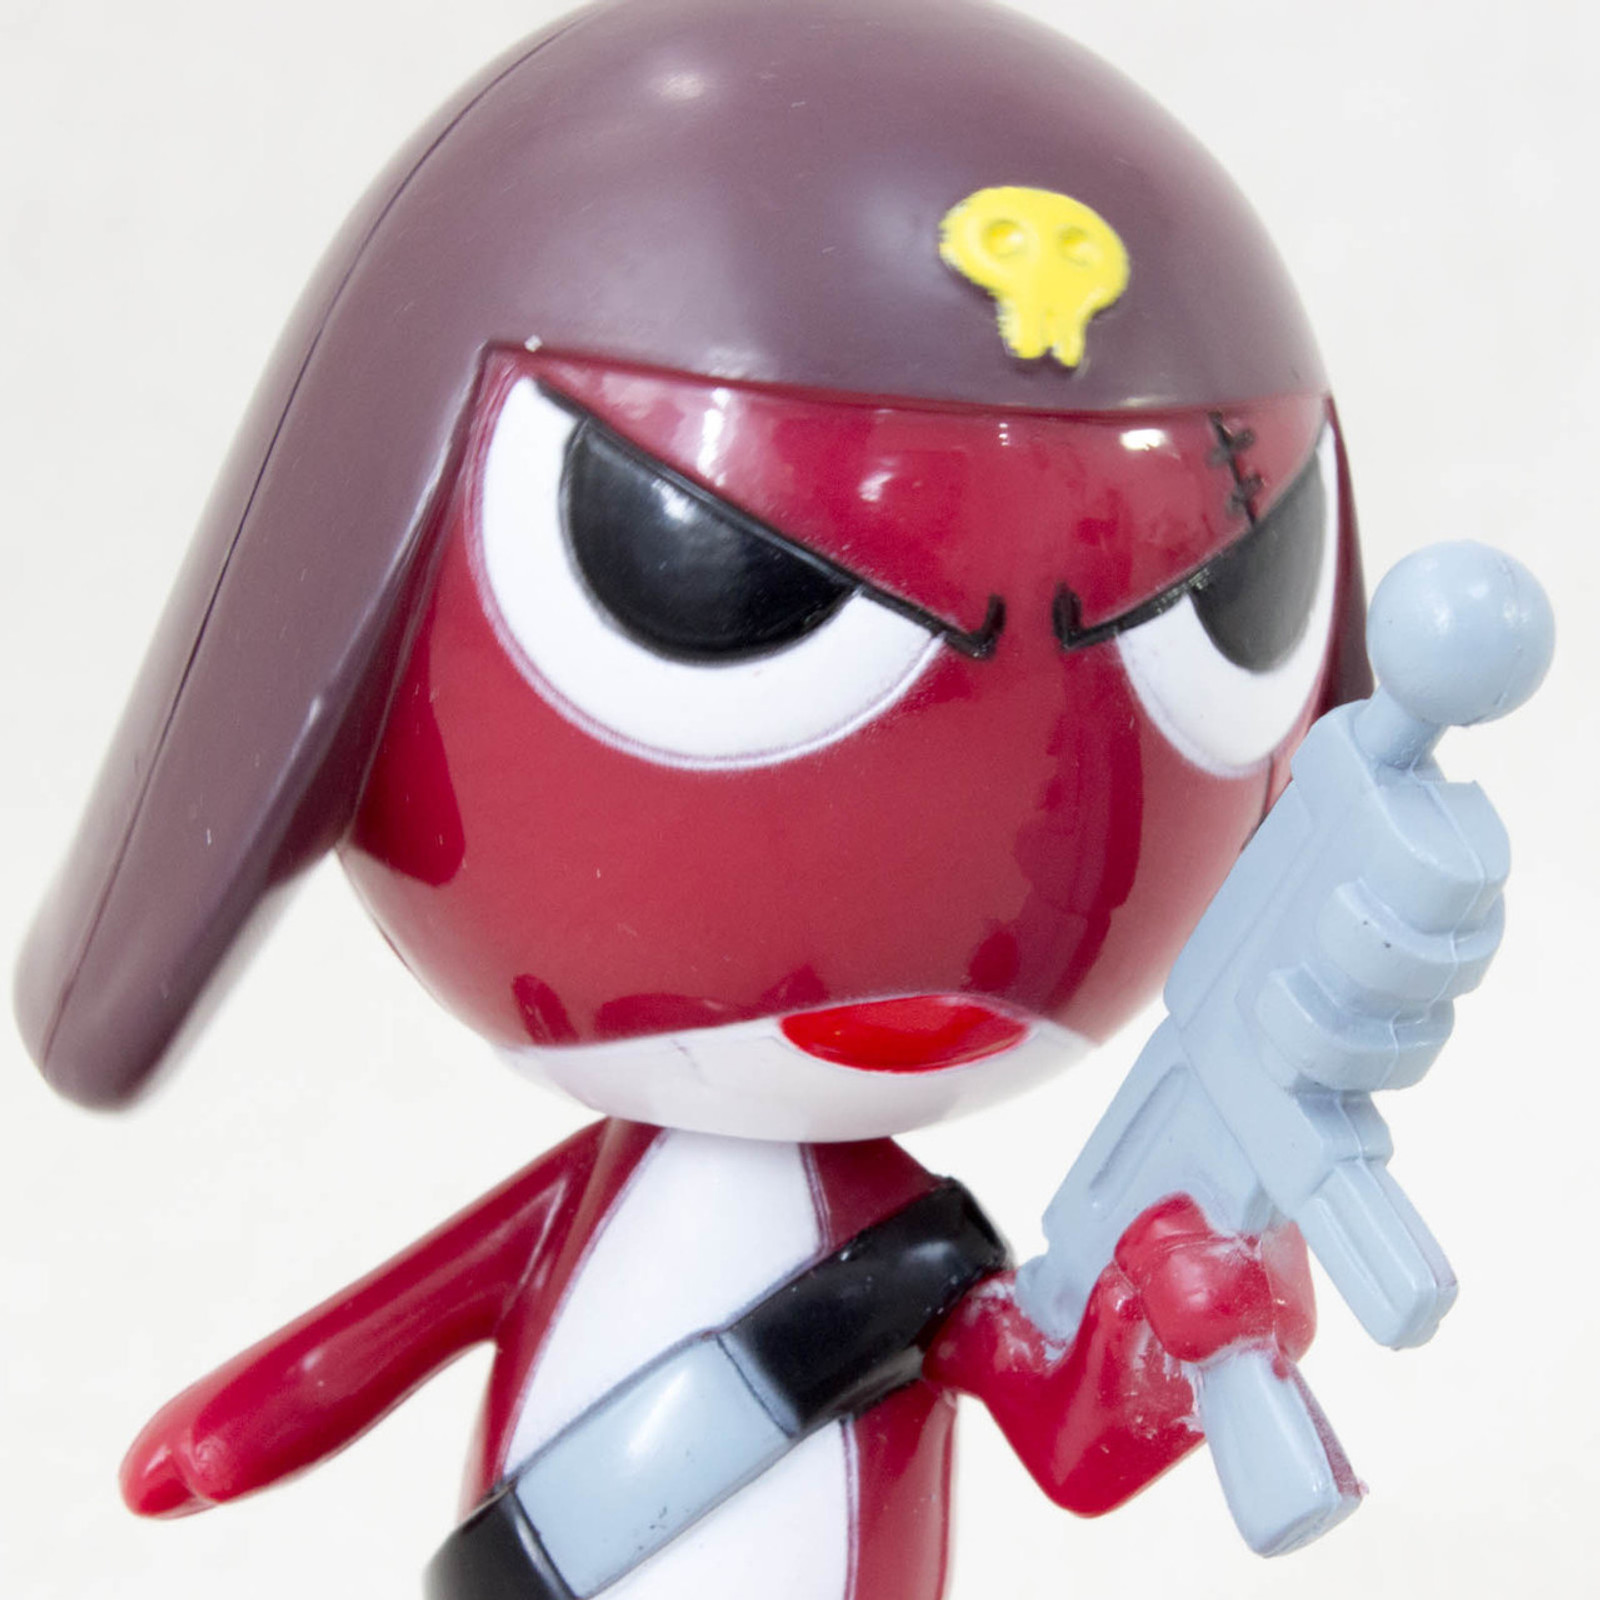 Sgt. Frog Keroro Gunso GIRORO Swing Bubble Head Figure JAPAN ANIME MANGA